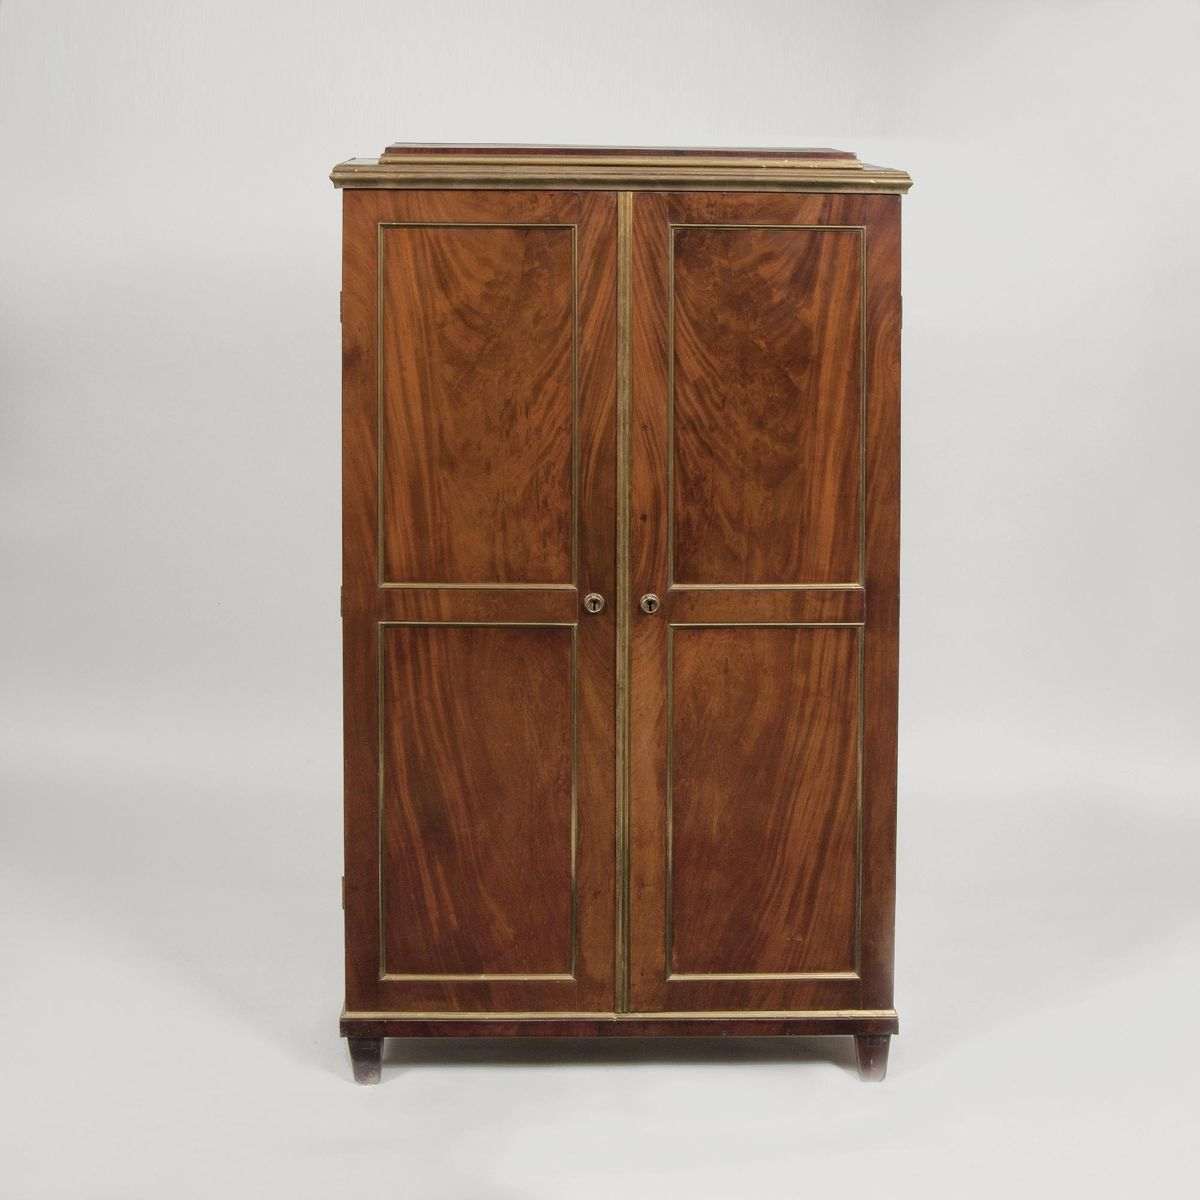 An Empire Cabinet